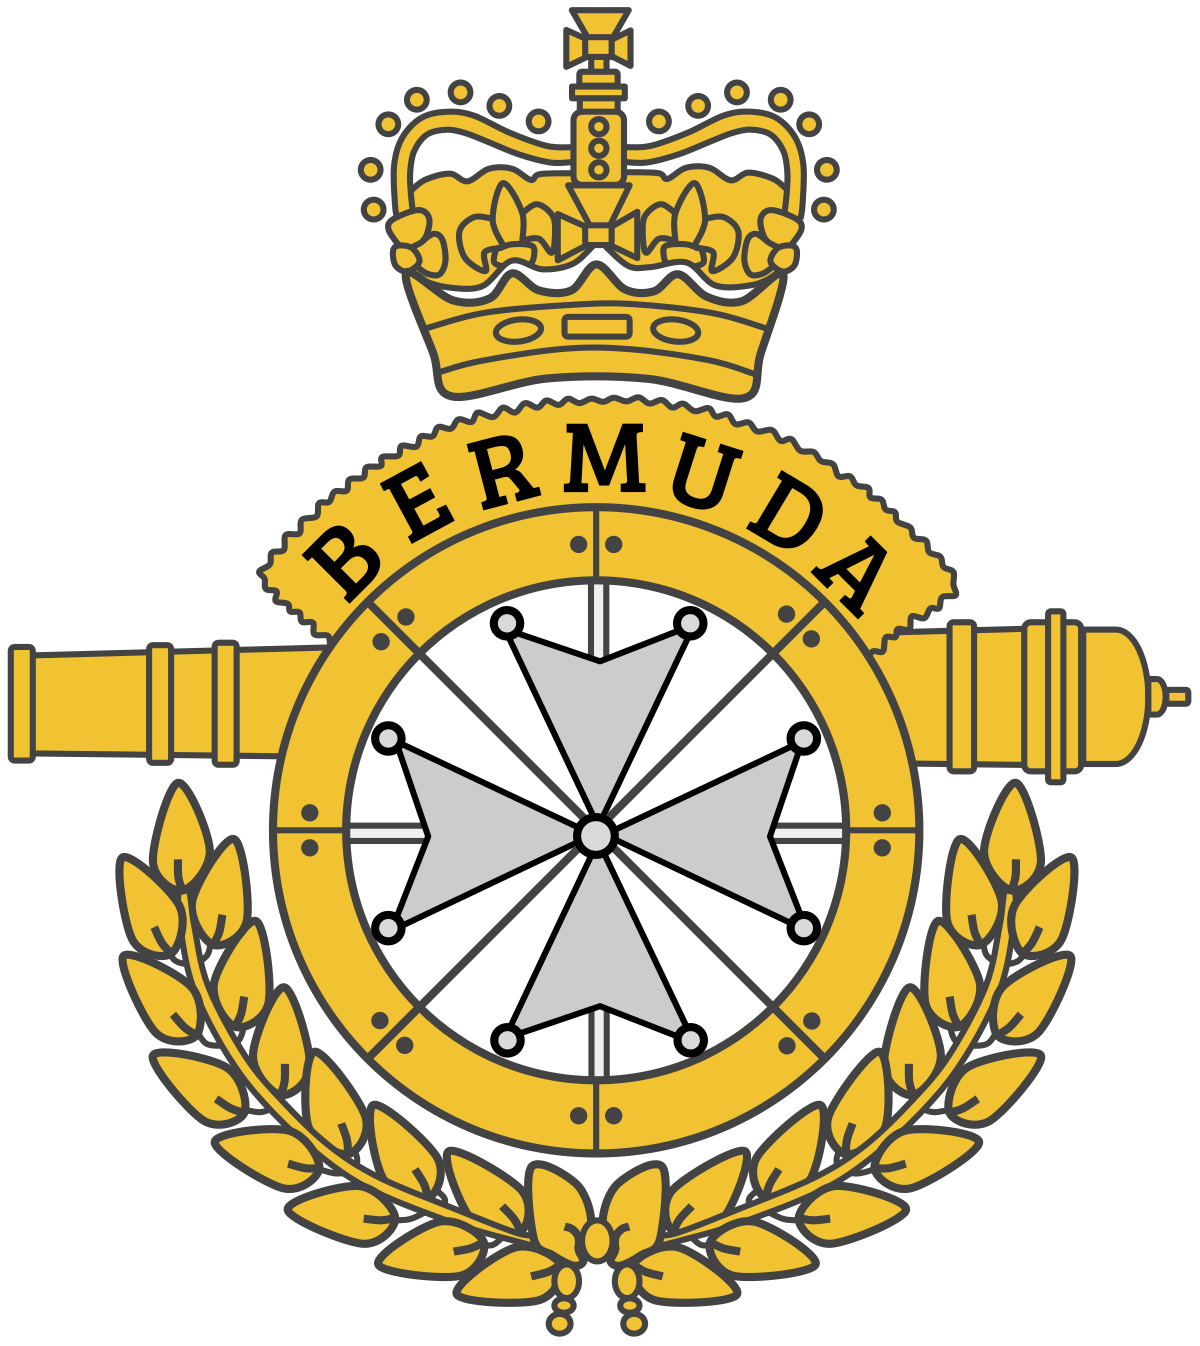 Cross batons clipart svg black and white library Royal Bermuda Regiment - Wikipedia svg black and white library